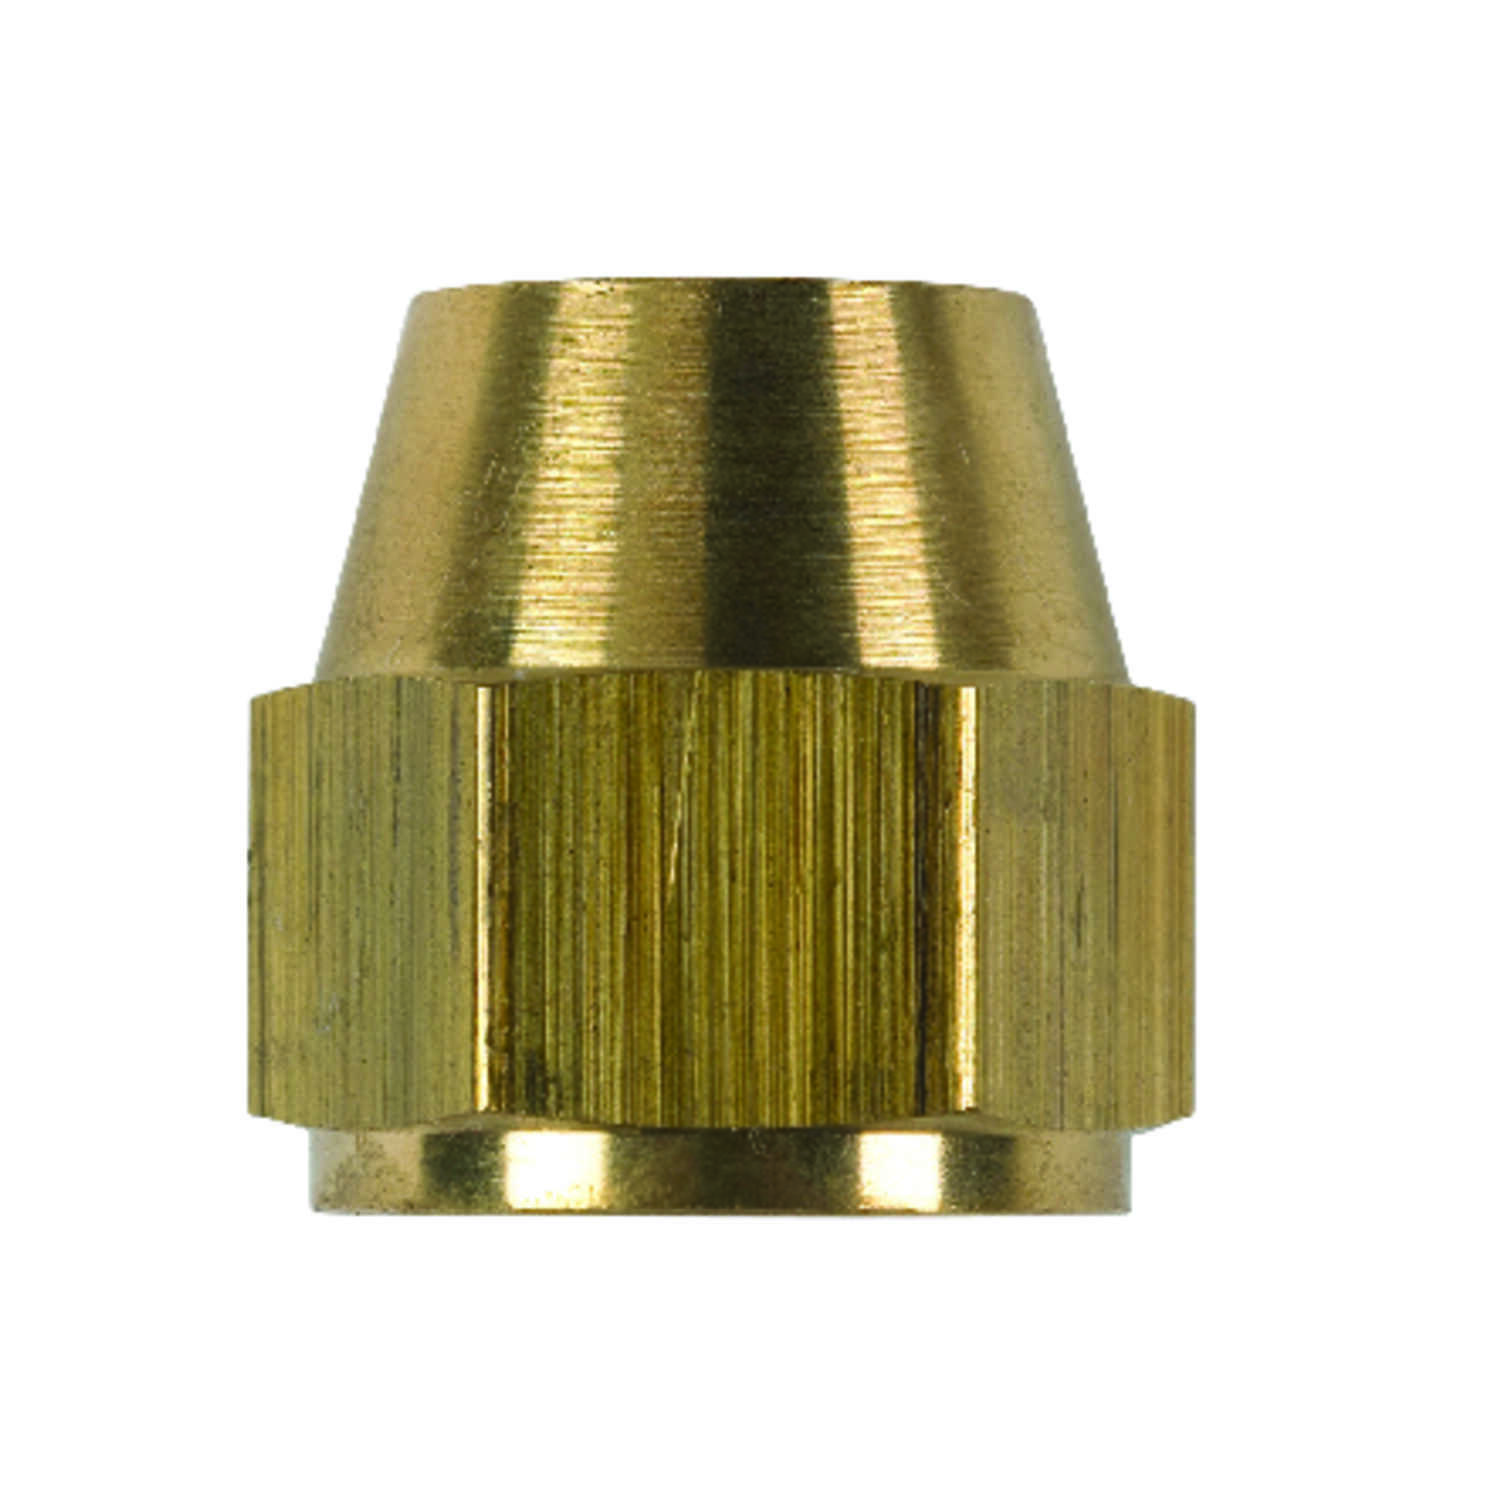 JMF  Brass  Bulk  1/4 in. Dia.